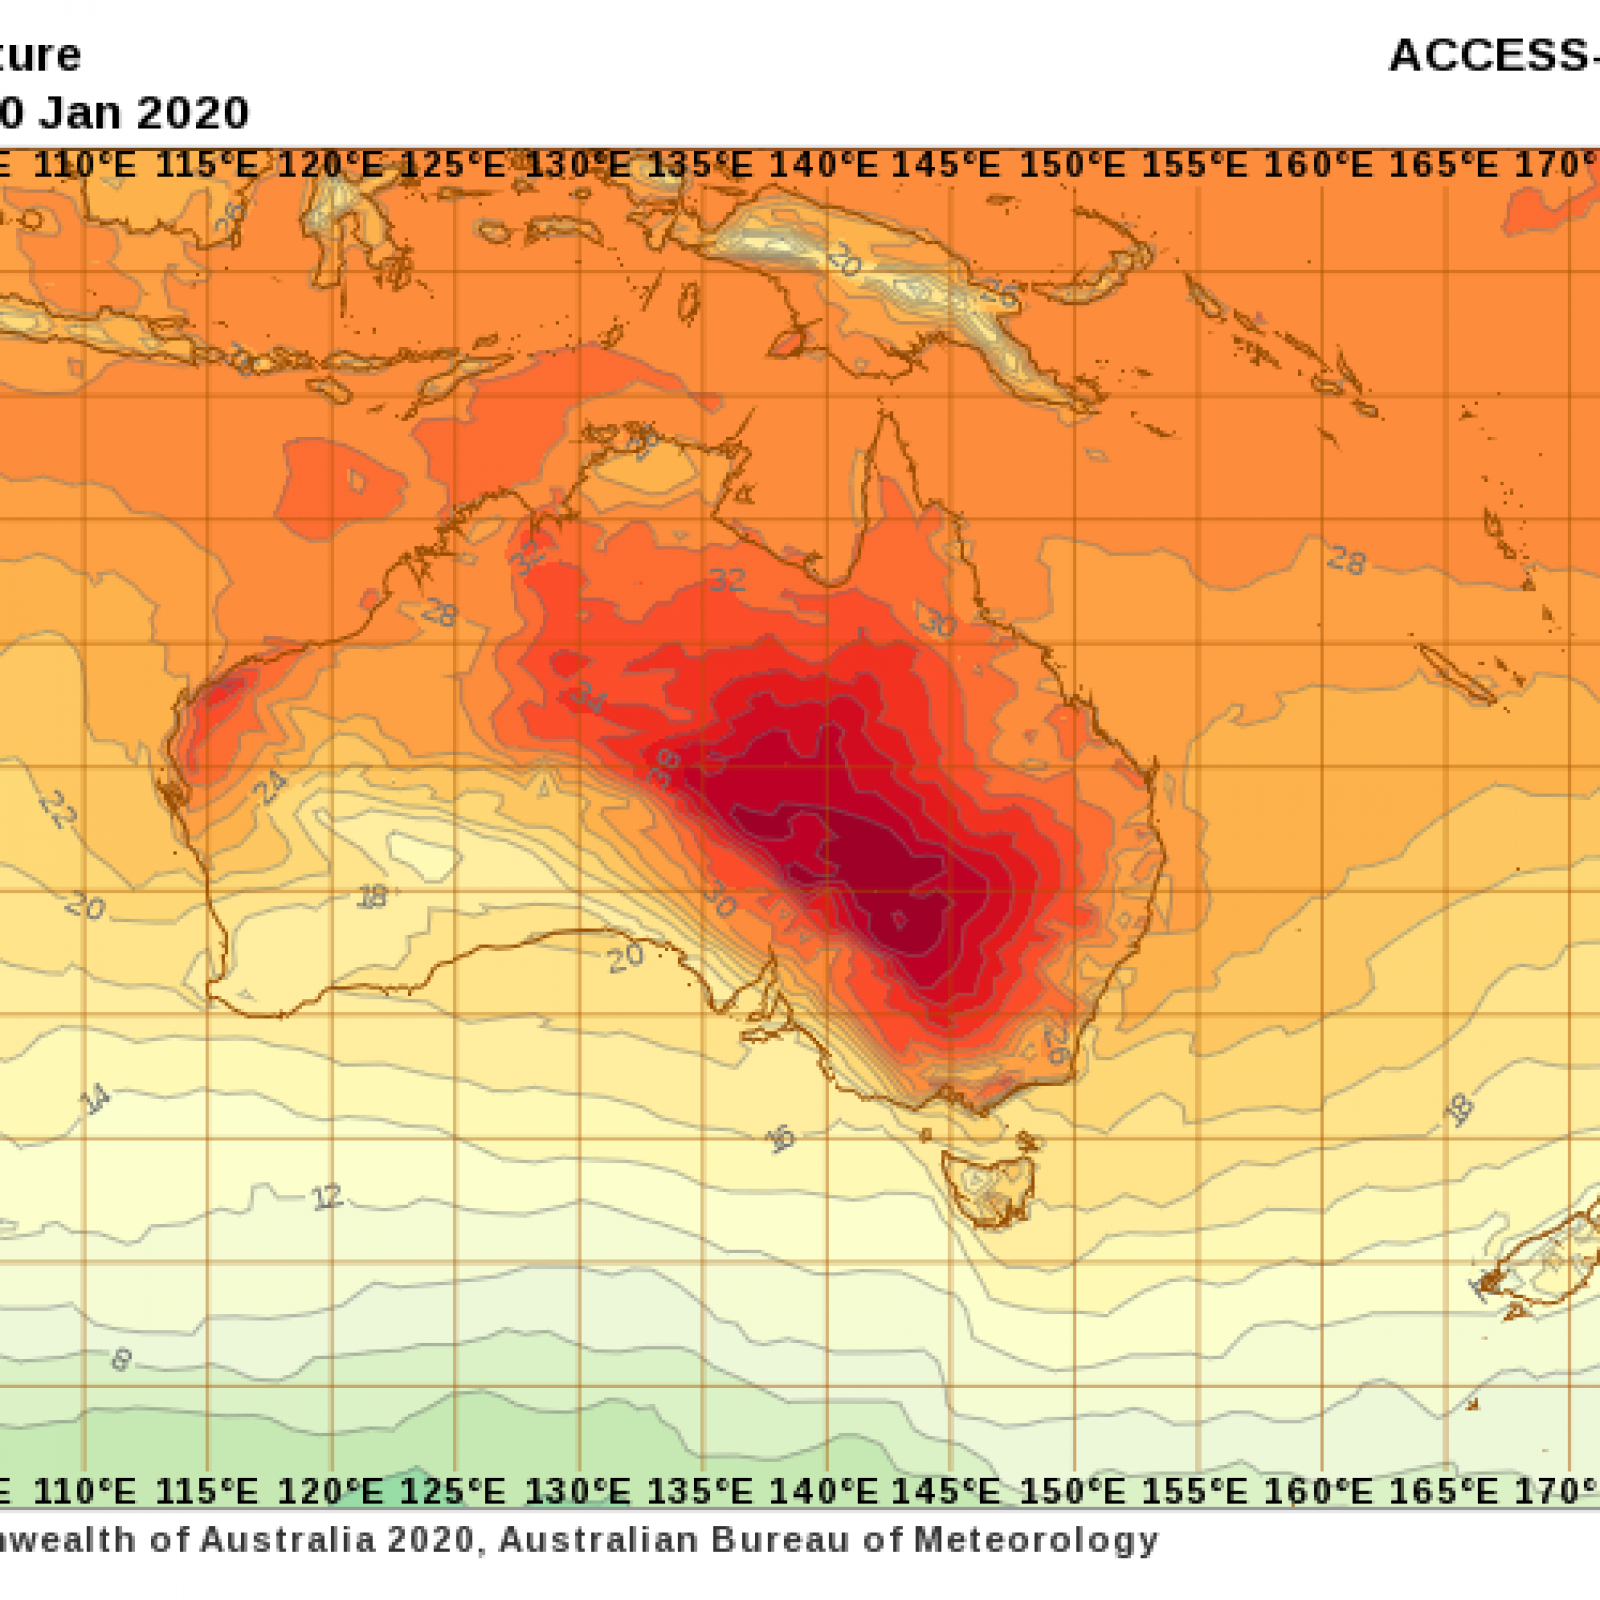 Australia Wildfire Map Update: Fire Weather Warnings Issued ... on travel directions, mapquest directions, traffic directions, compass directions, driving directions, get directions, giving directions, scale directions,